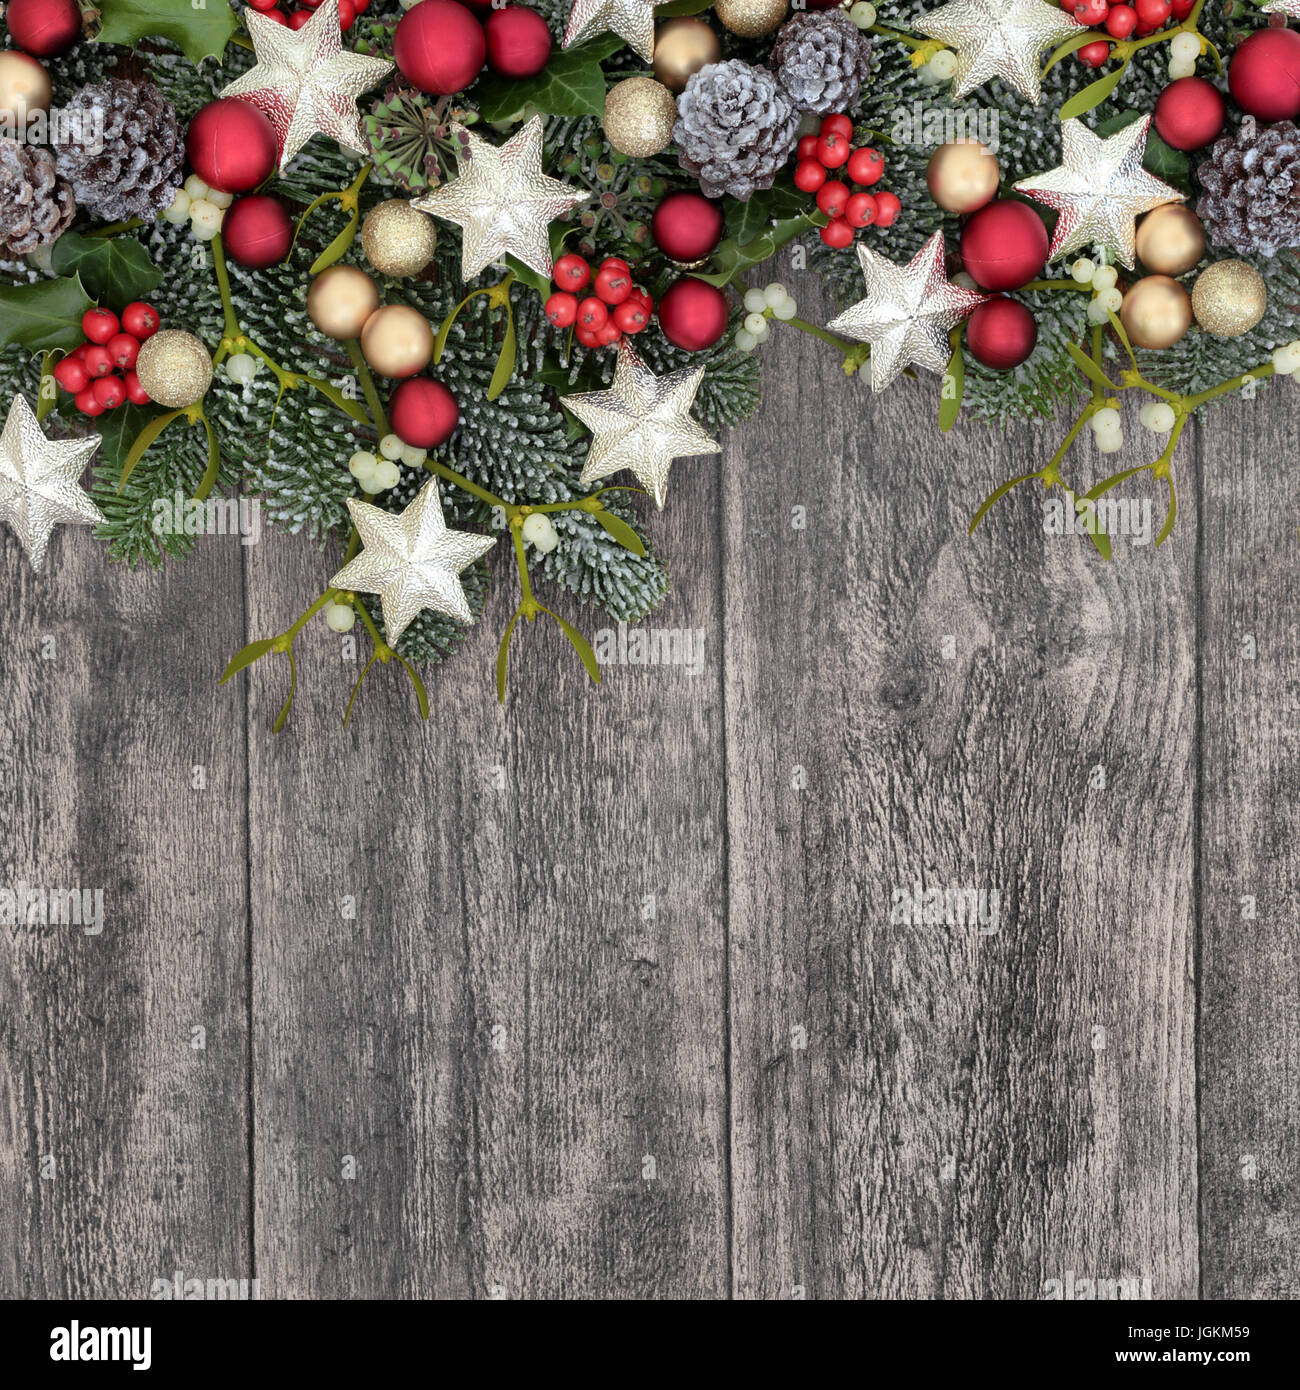 Christmas Background Border With Bauble Decorations Holly Ivy Mistletoe Fir And Pine Cones On Old Wood